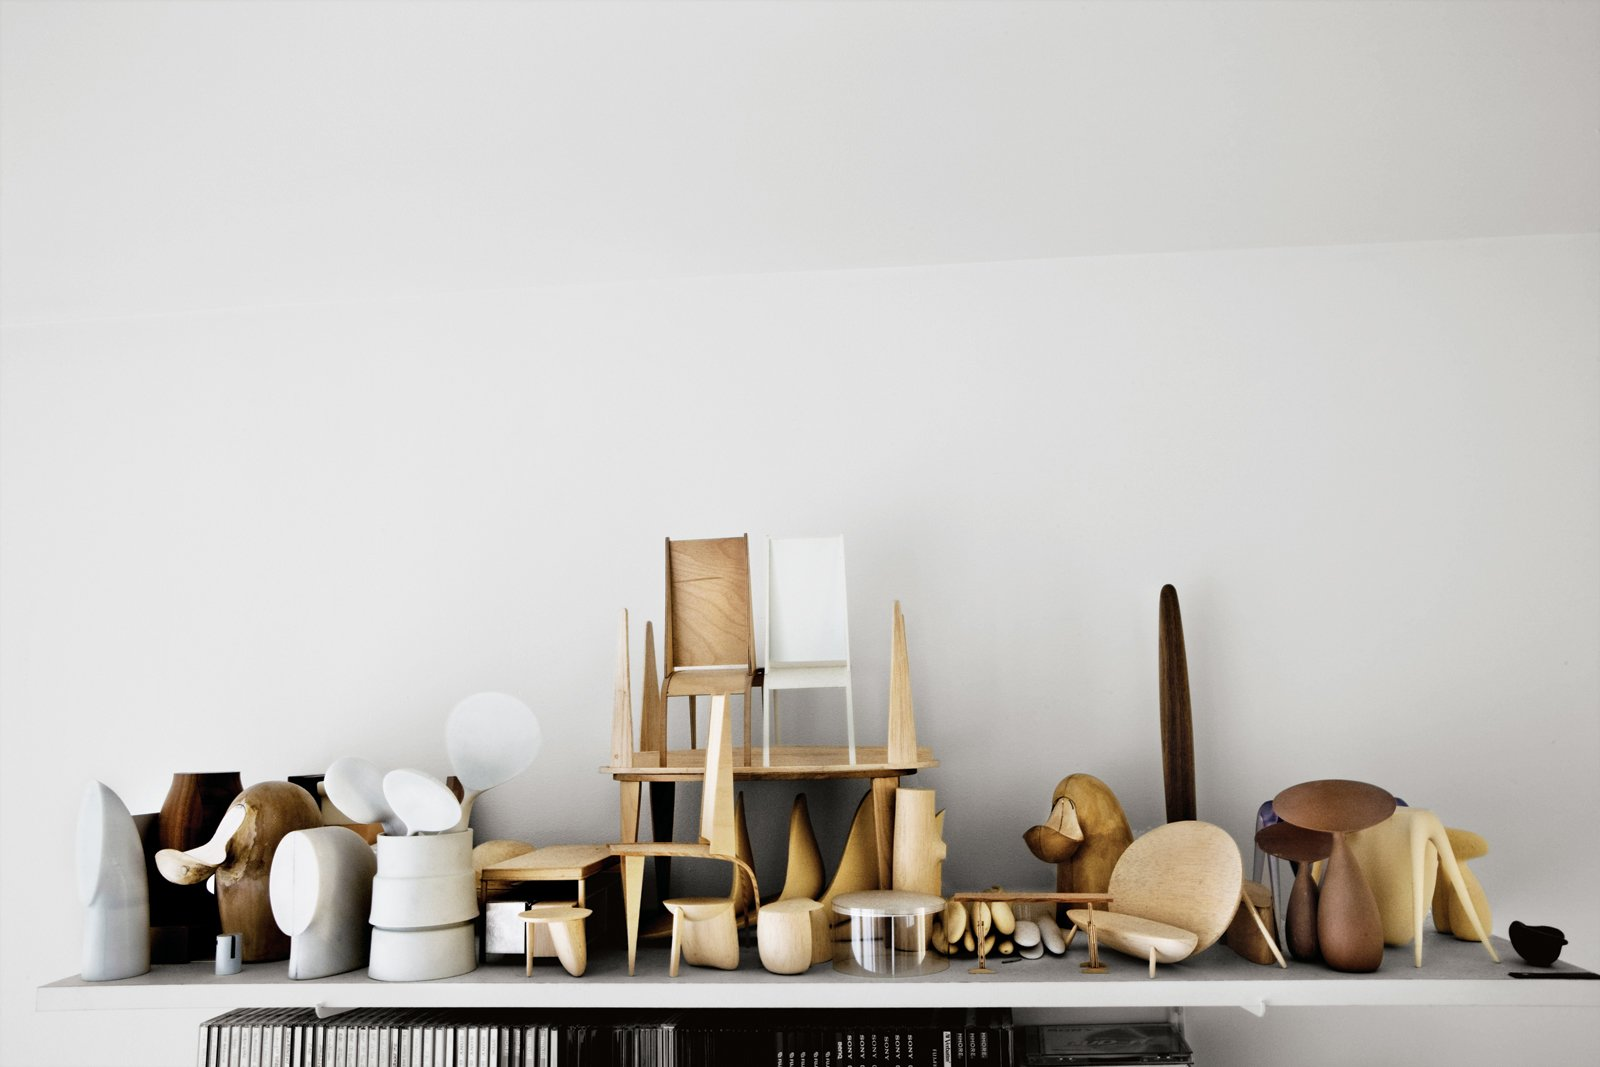 """""""Every material has its own beauty, but I'm mostly drawn to wood because of its variety of texture, smell, and color,"""" Bakker says. Maquettes made of   balsa wood and plaster are displayed in   his studio and are used as guides for skilled Dutch   or European artisans who produce the finished   pieces in silver, glass, ceramic, and copper.  Photo 1 of 9 in New Dutch Design: Aldo Bakker"""